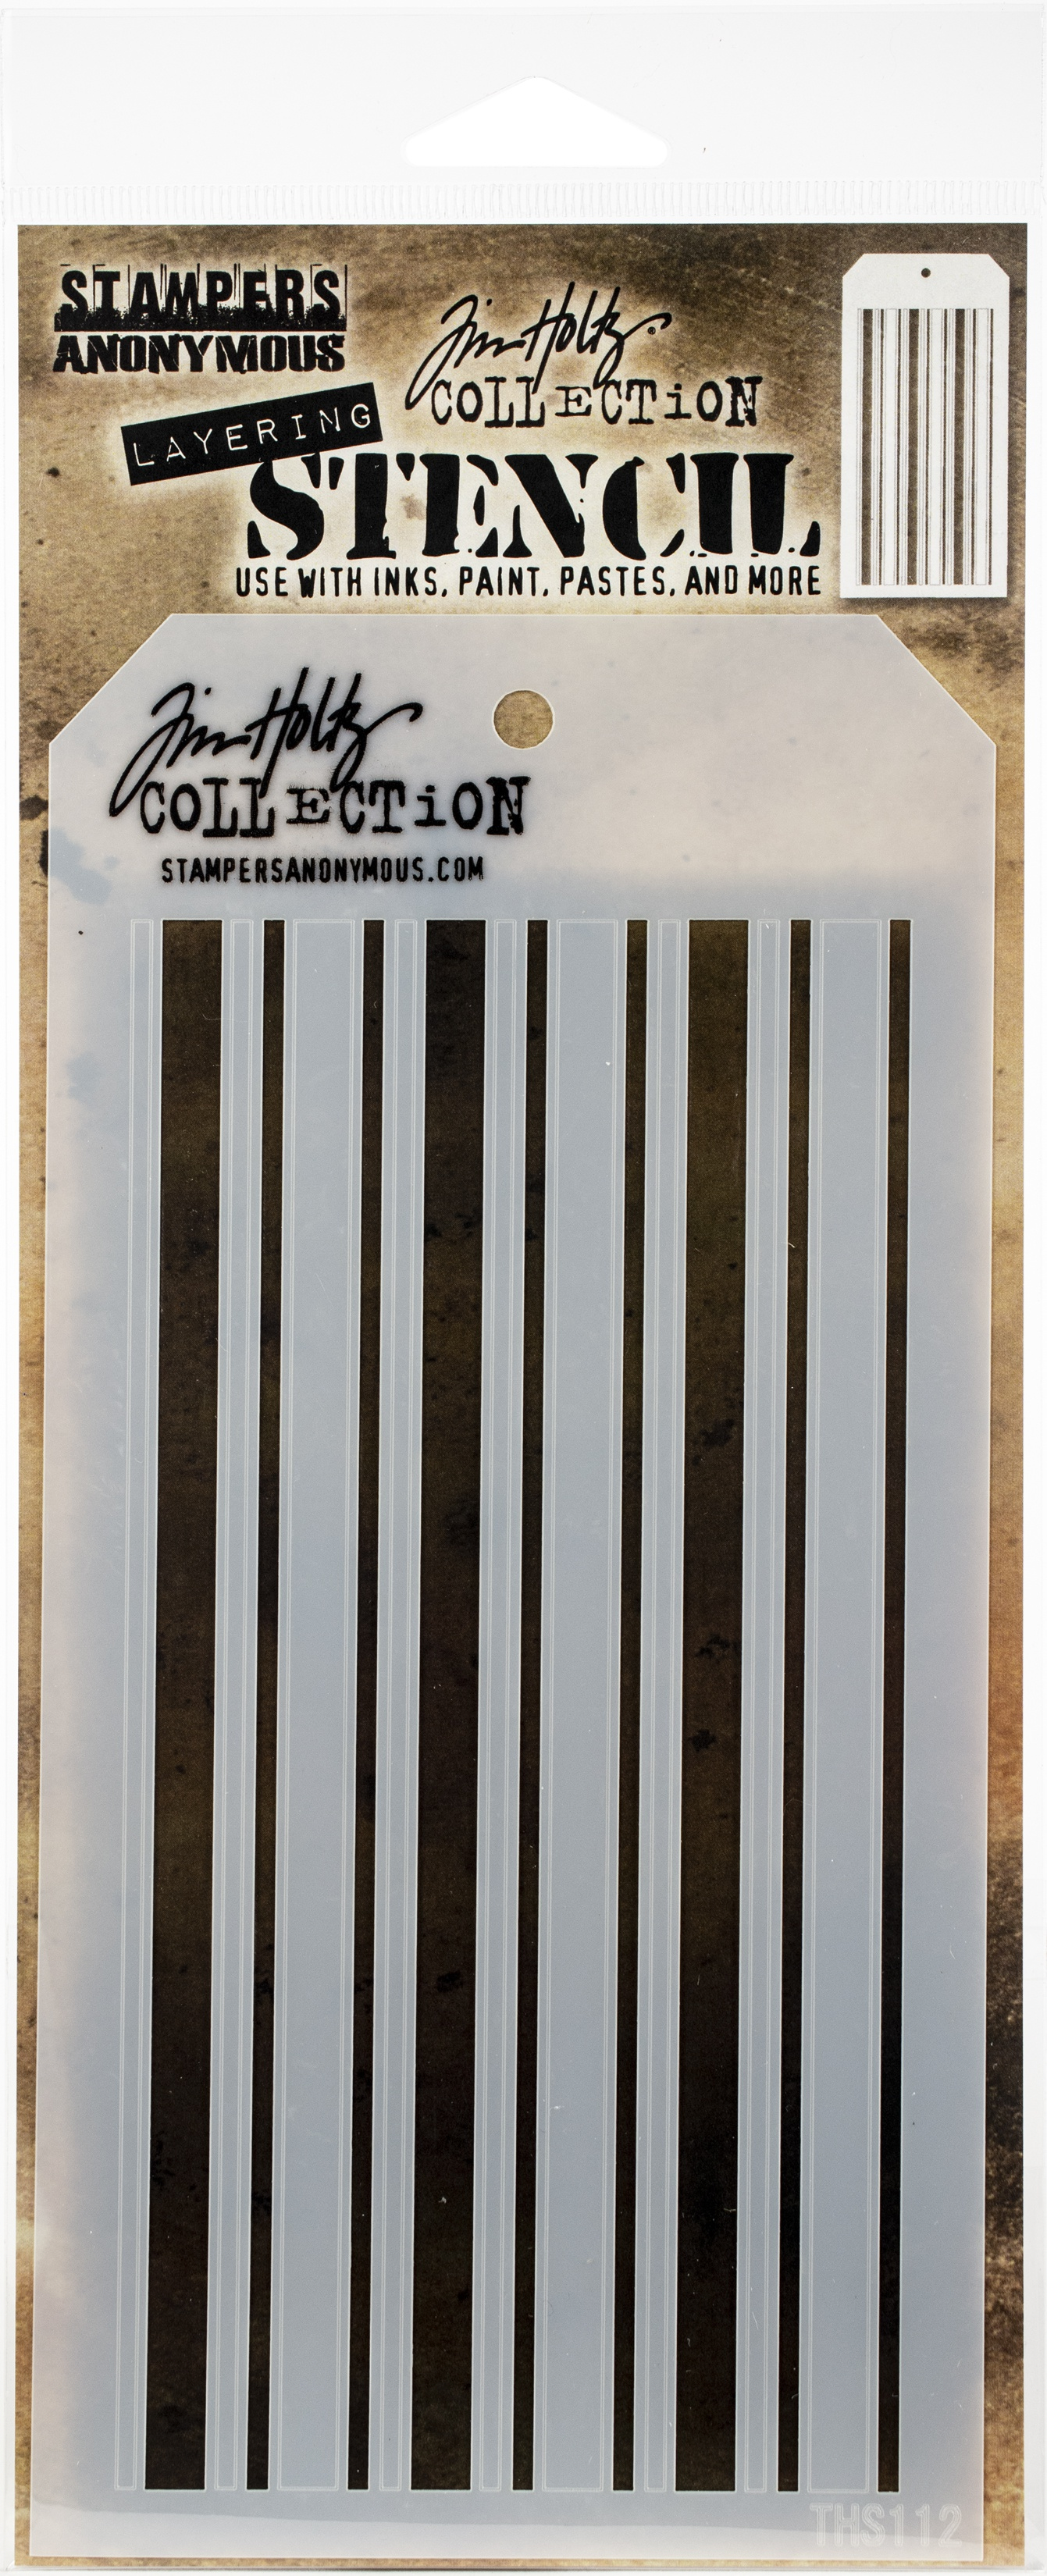 Tim Holtz Layered Stencil 4.125X8.5-Shifter Mint